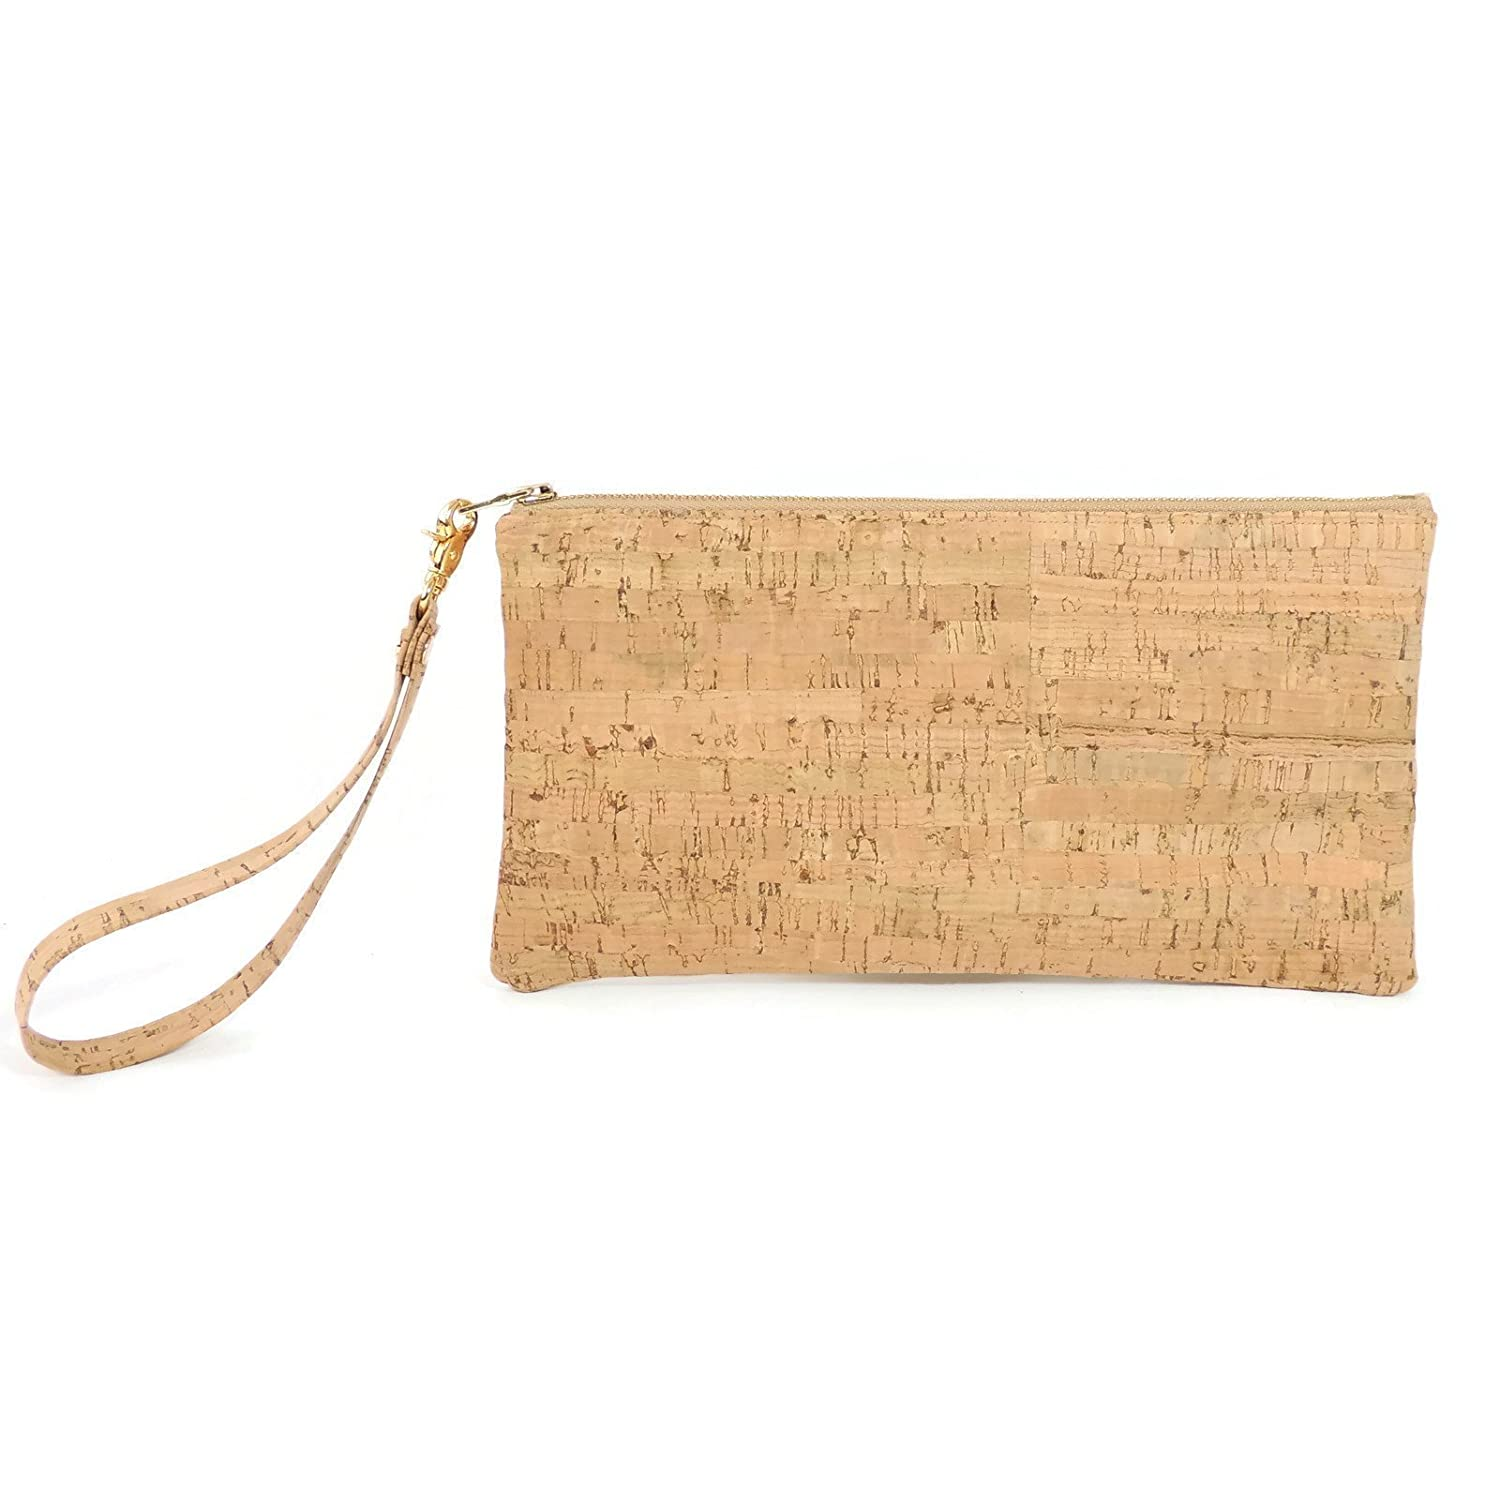 Vegan Wristlet Clutch in Cork Leather by Spicer Bags